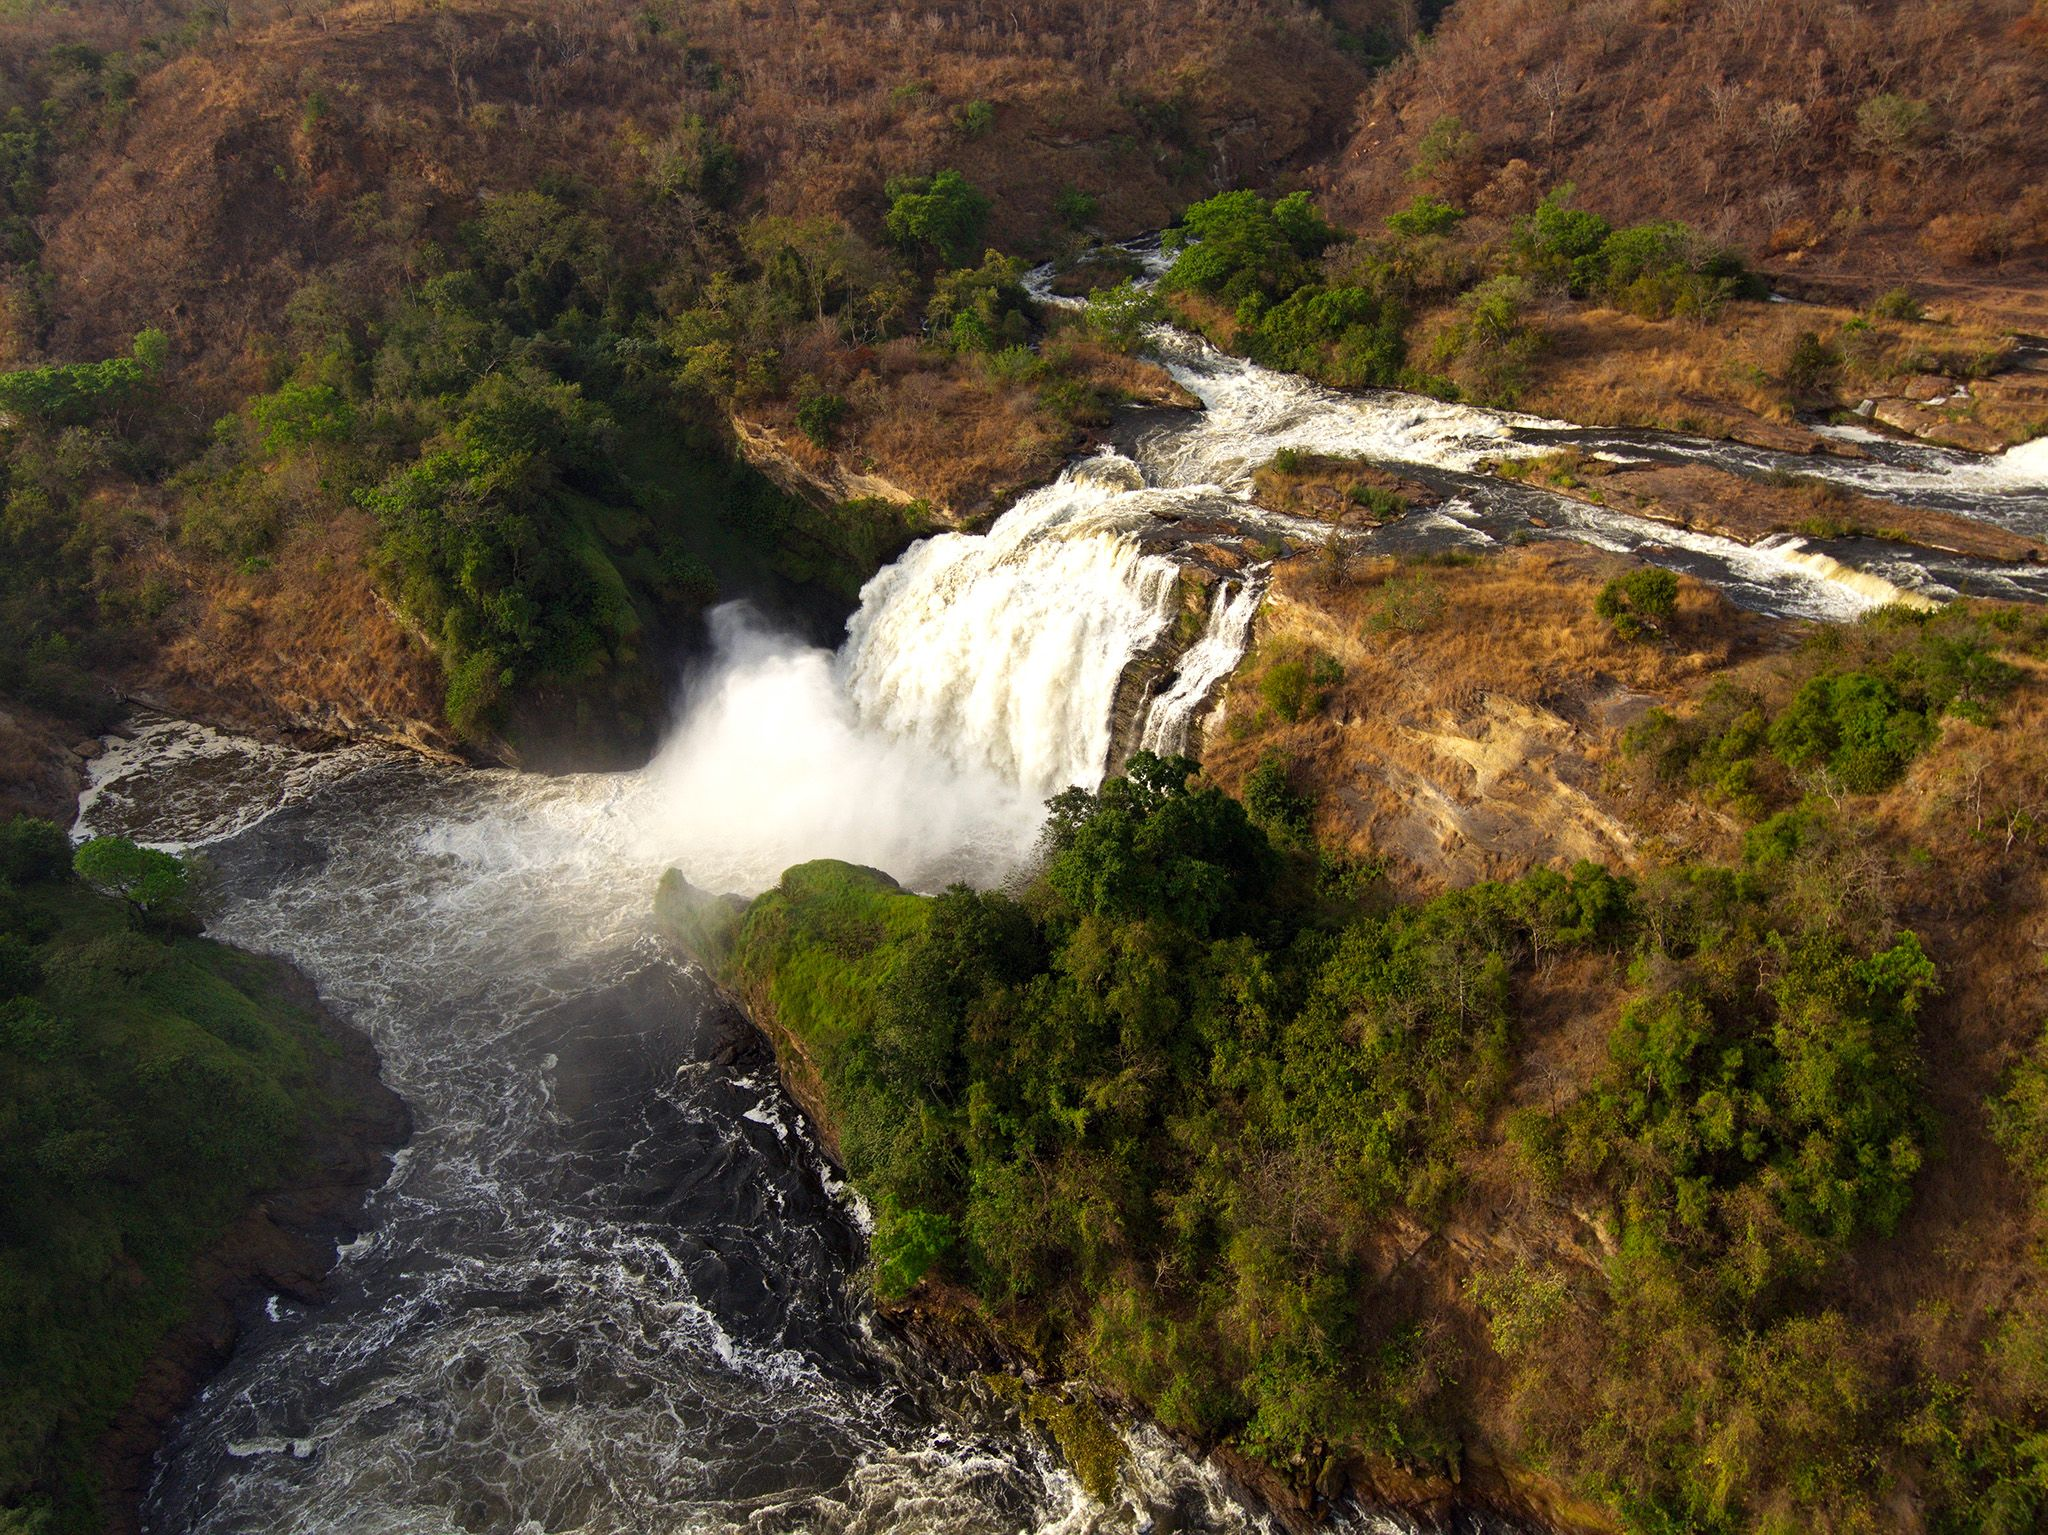 Uganda:  Nile, Rapids Murchison Falls, Murchison Falls National Park. This image is from Wild... [Foto del giorno - September 2018]